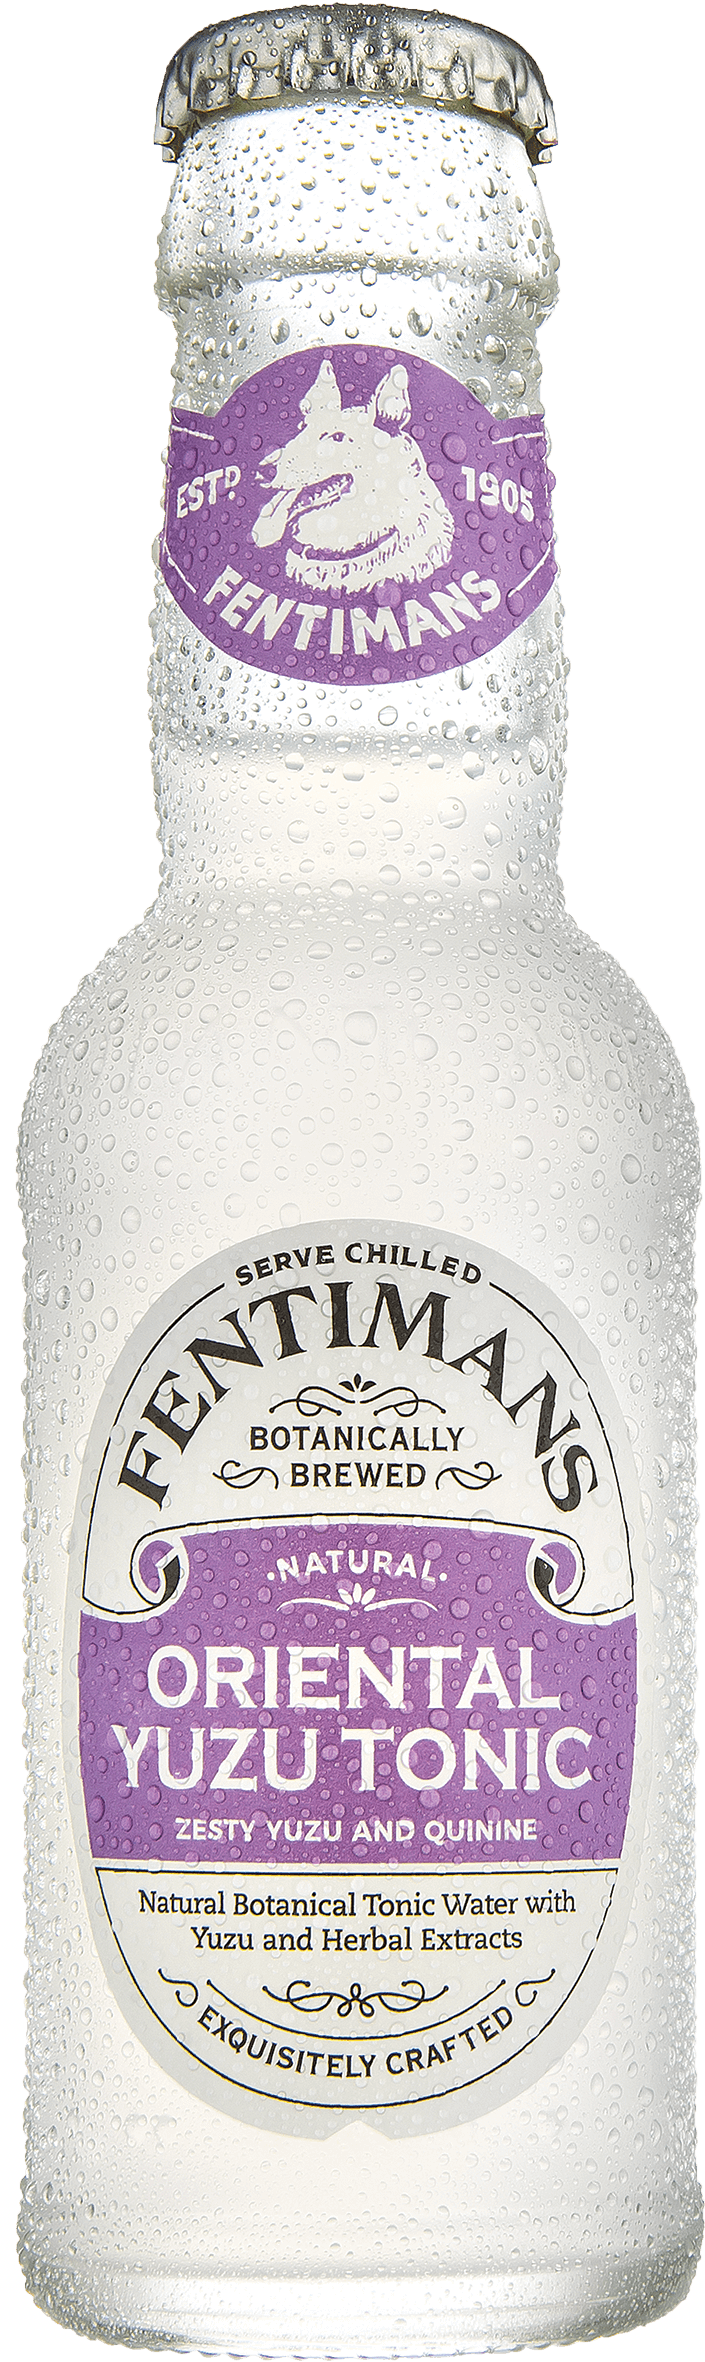 Fentimans Oriental Yuzu Tonic - GINSATIONS